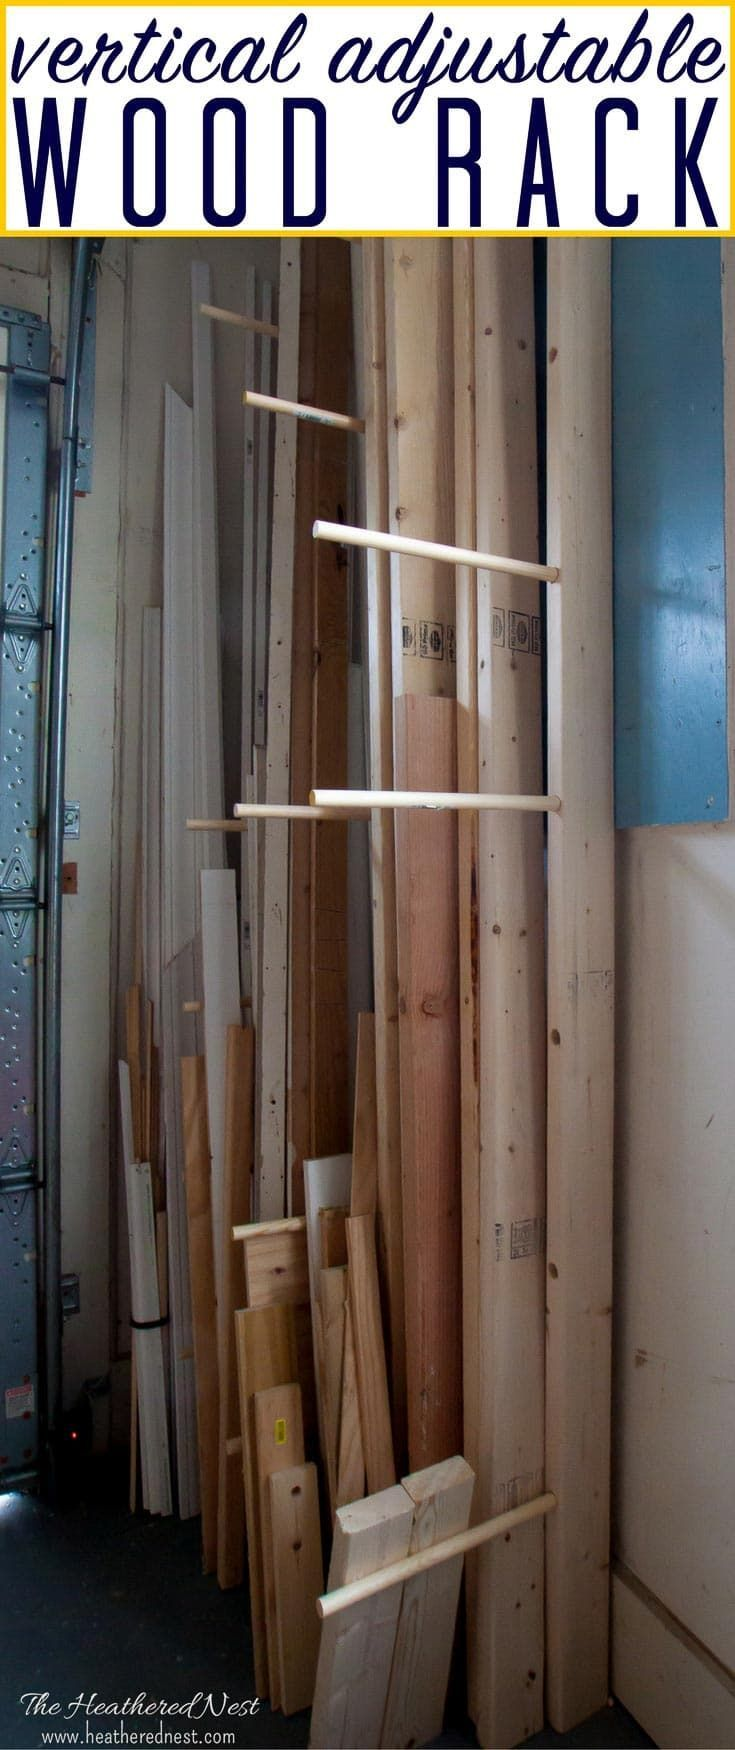 A simple, adjustable, DIY vertical wood rack to store lumber. Love how this easily adjusts to accommodate any size of wood and lumber.